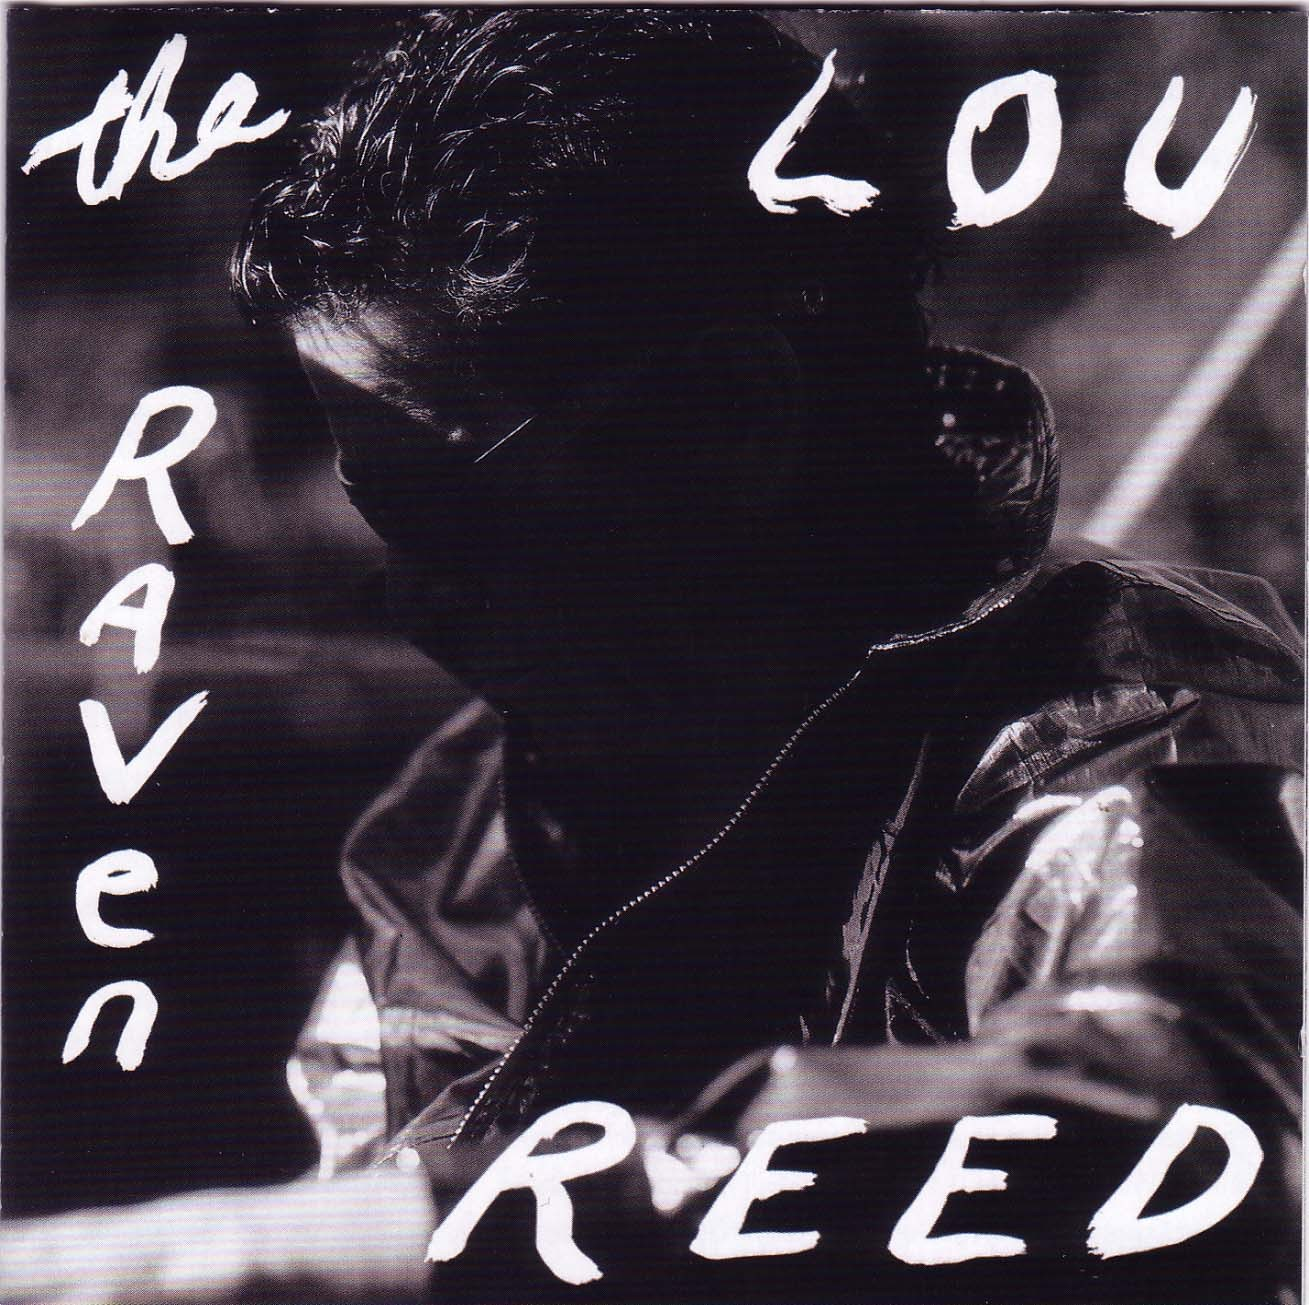 http://3.bp.blogspot.com/_oGg-5rClQbo/S-Is63MTBtI/AAAAAAAAMB8/FKdvAhjwONY/s1600/lou_reed_the_raven_2003_retail_cd-front.jpg